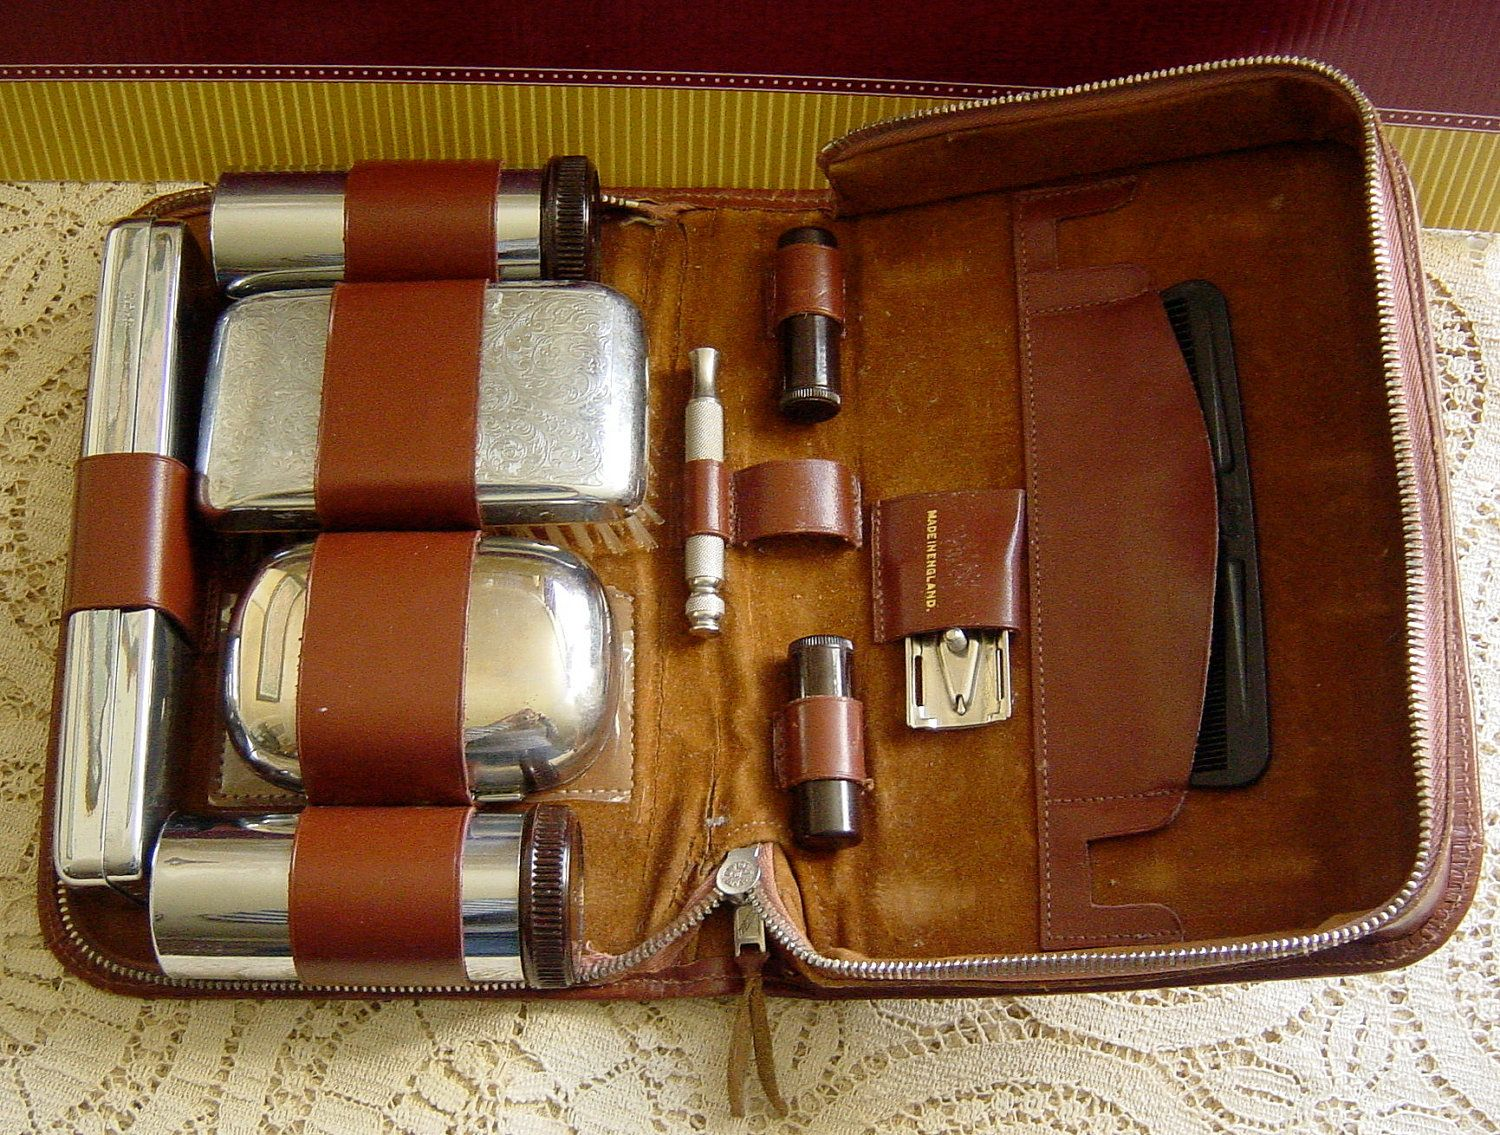 Art Deco Antique Vintage 1920s 1930s Mens Travel Grooming Kit.  75.00 1e557a7974e59